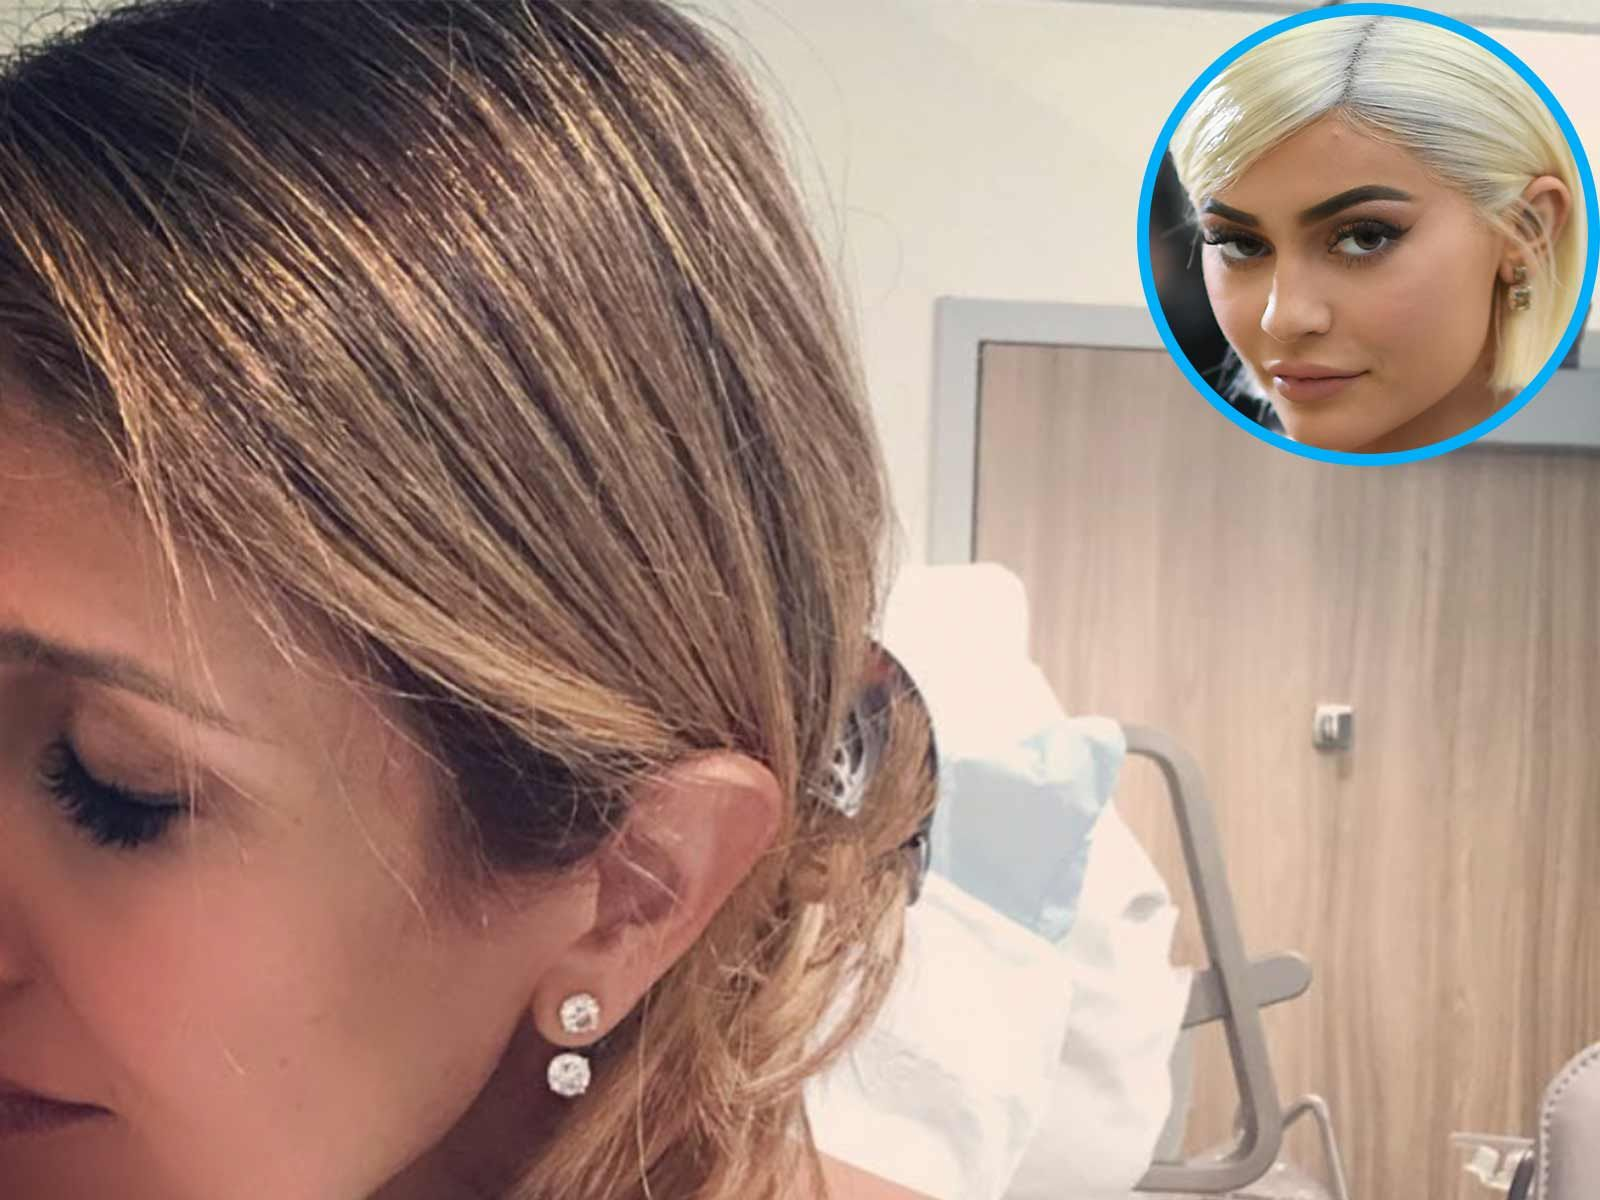 Kylie Jenner's OB-GYN Has Breast Cancer Scare: 'My Life